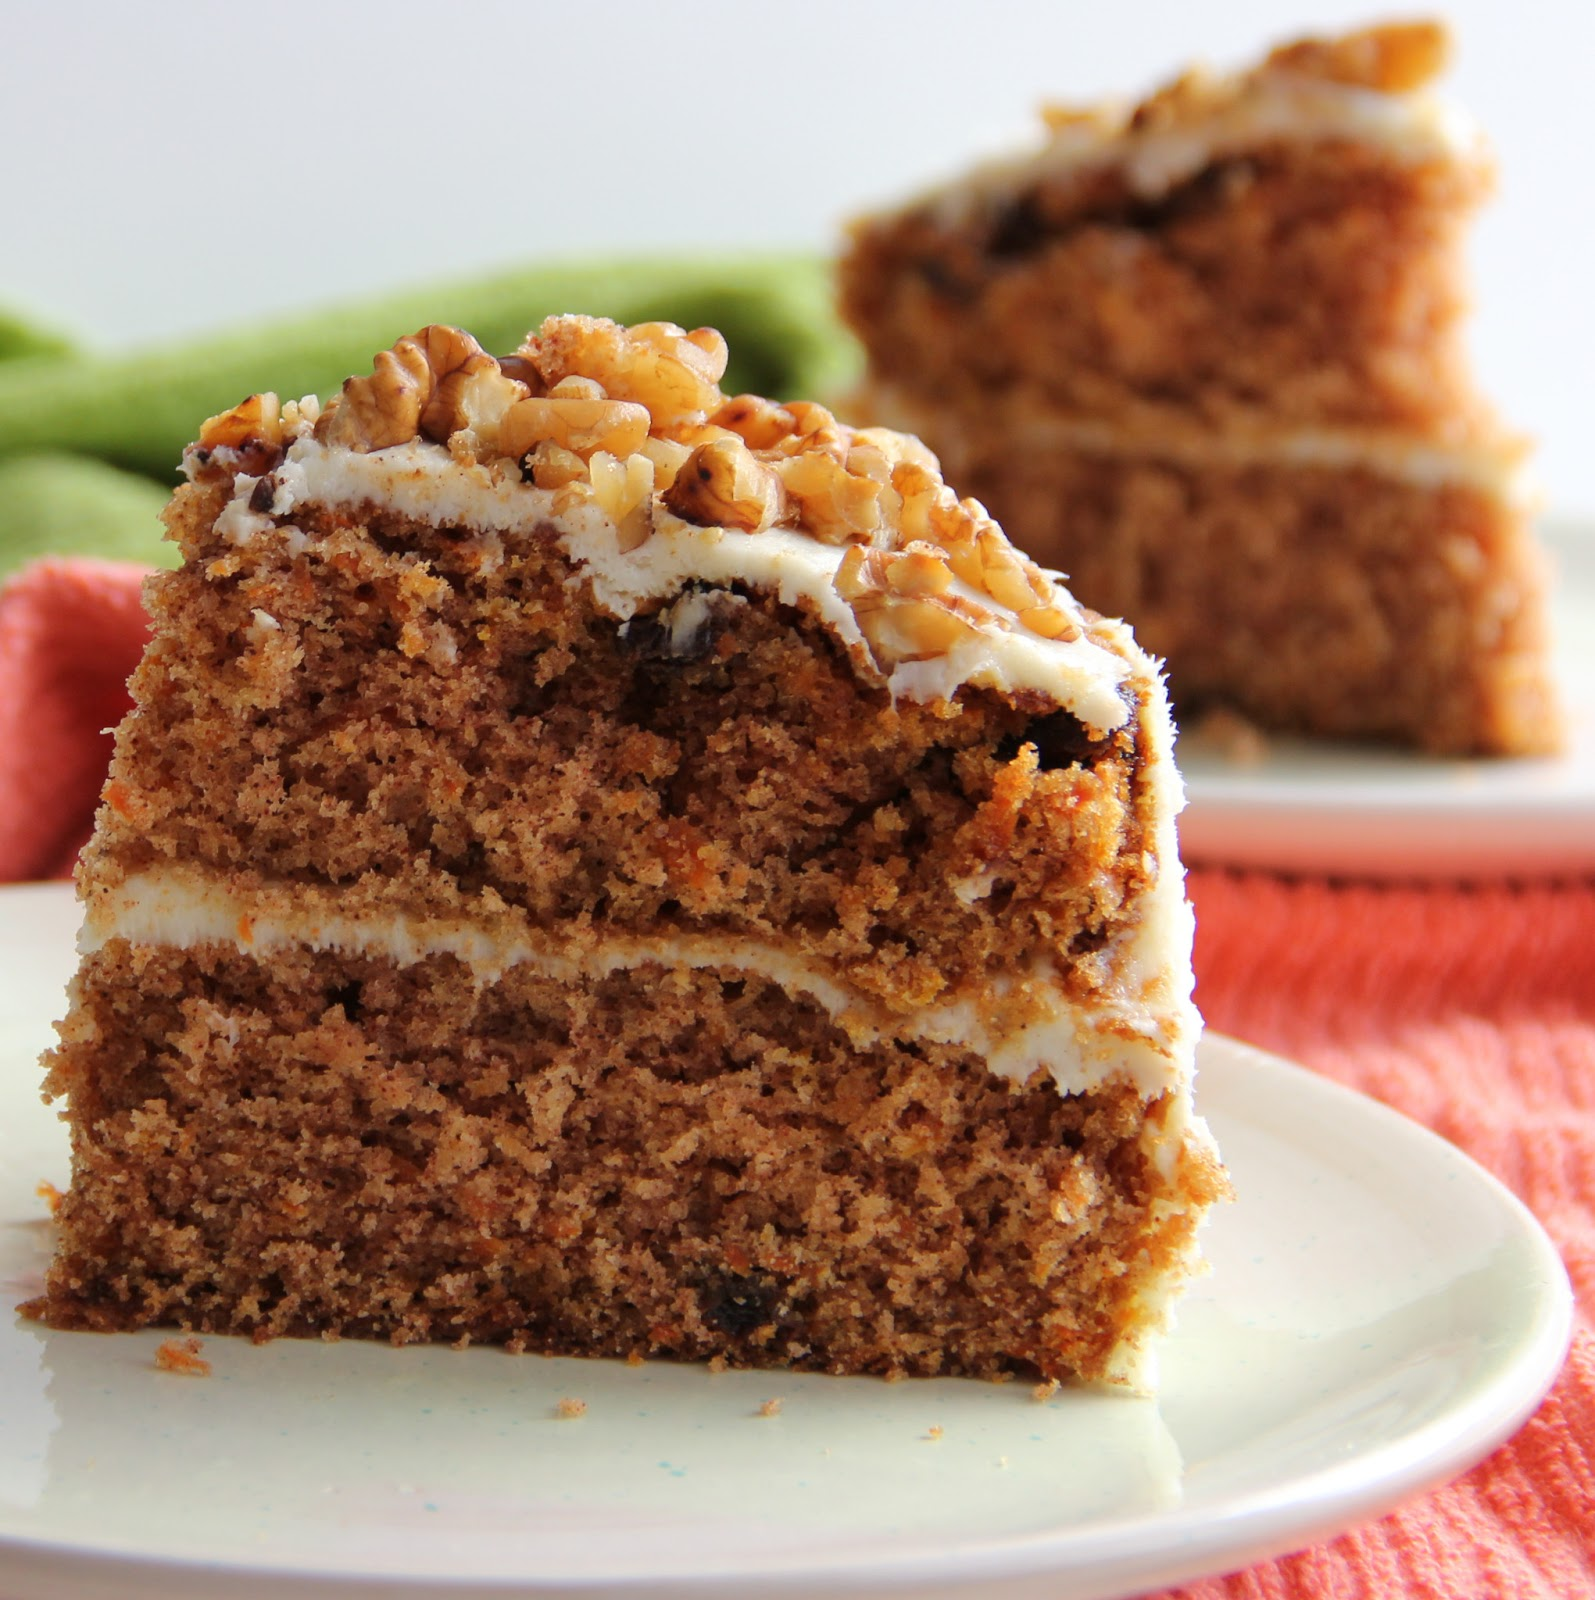 Sassy Sweets Carrot Cake With Cream Cheese Frosting